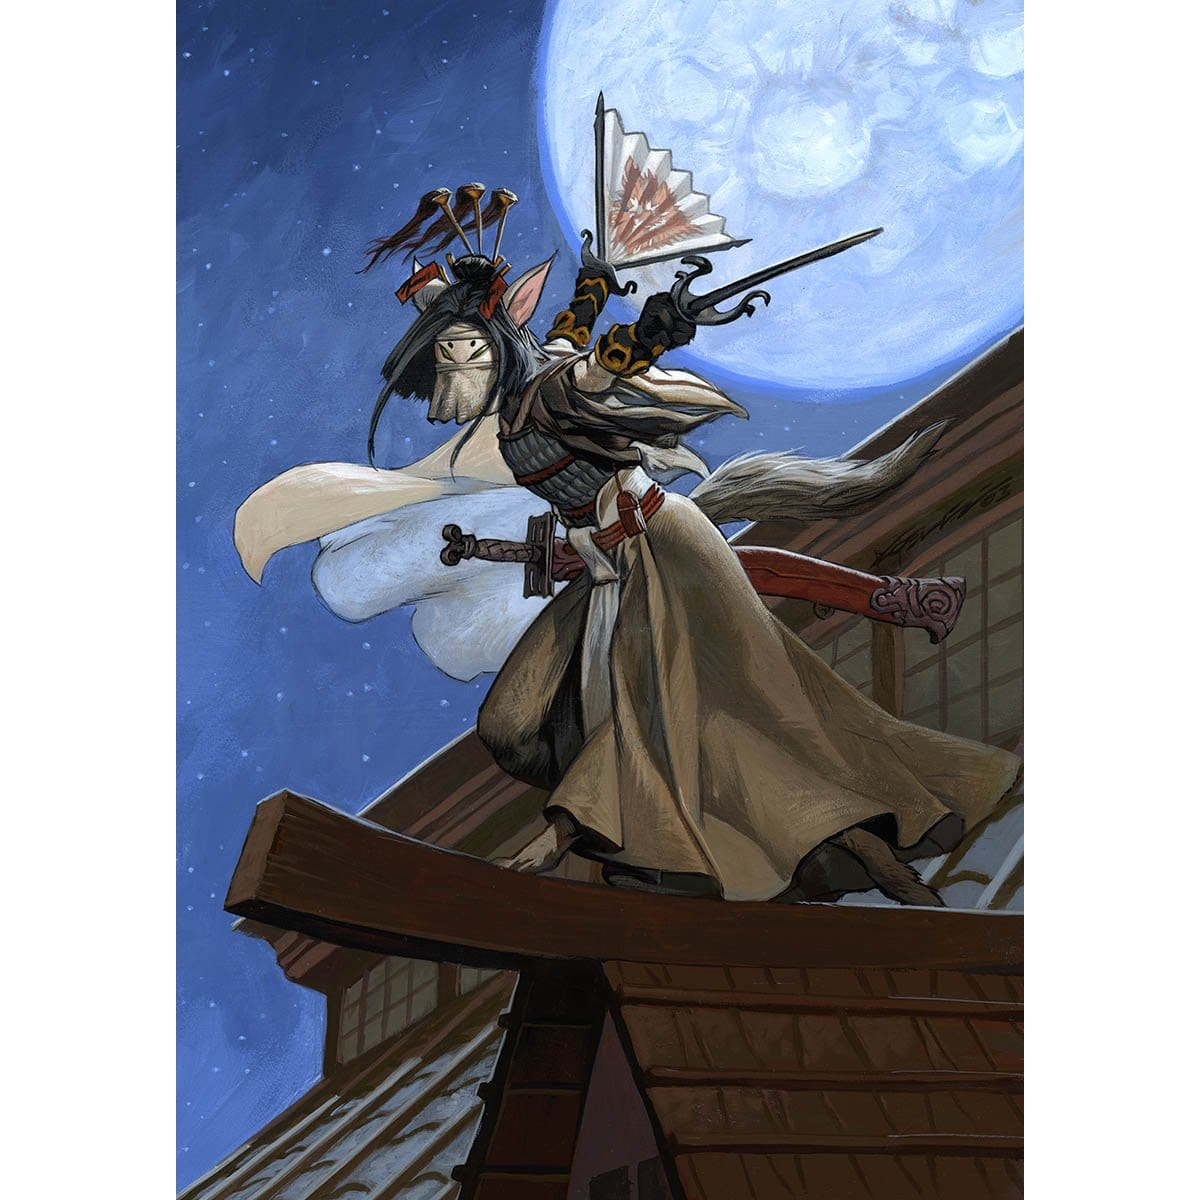 Samurai of the Pale Curtain Print - Print - Original Magic Art - Accessories for Magic the Gathering and other card games